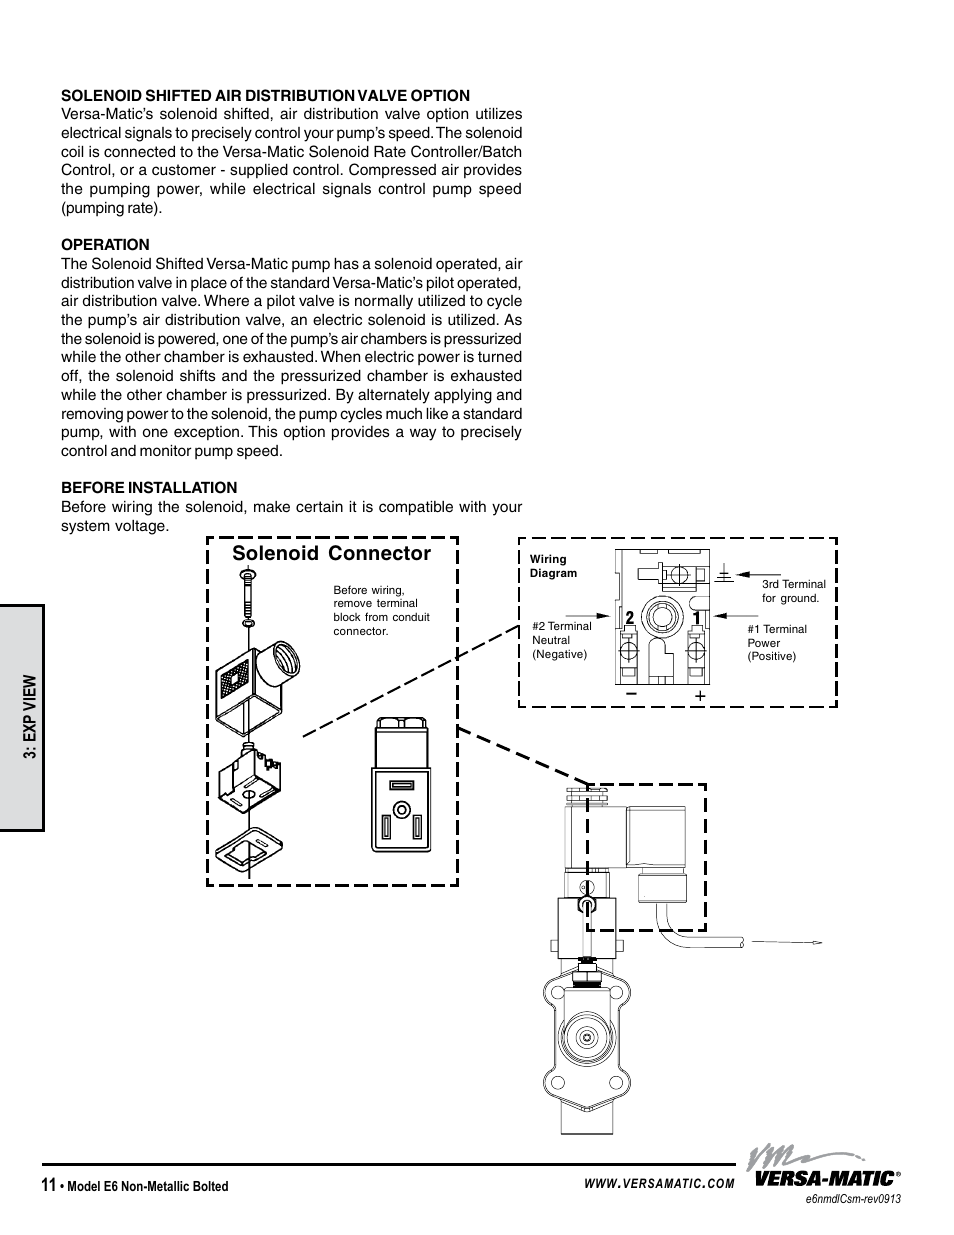 medium resolution of solenoid connector versa matic 1 4 elima matic bolted plastic e6 user manual page 14 15